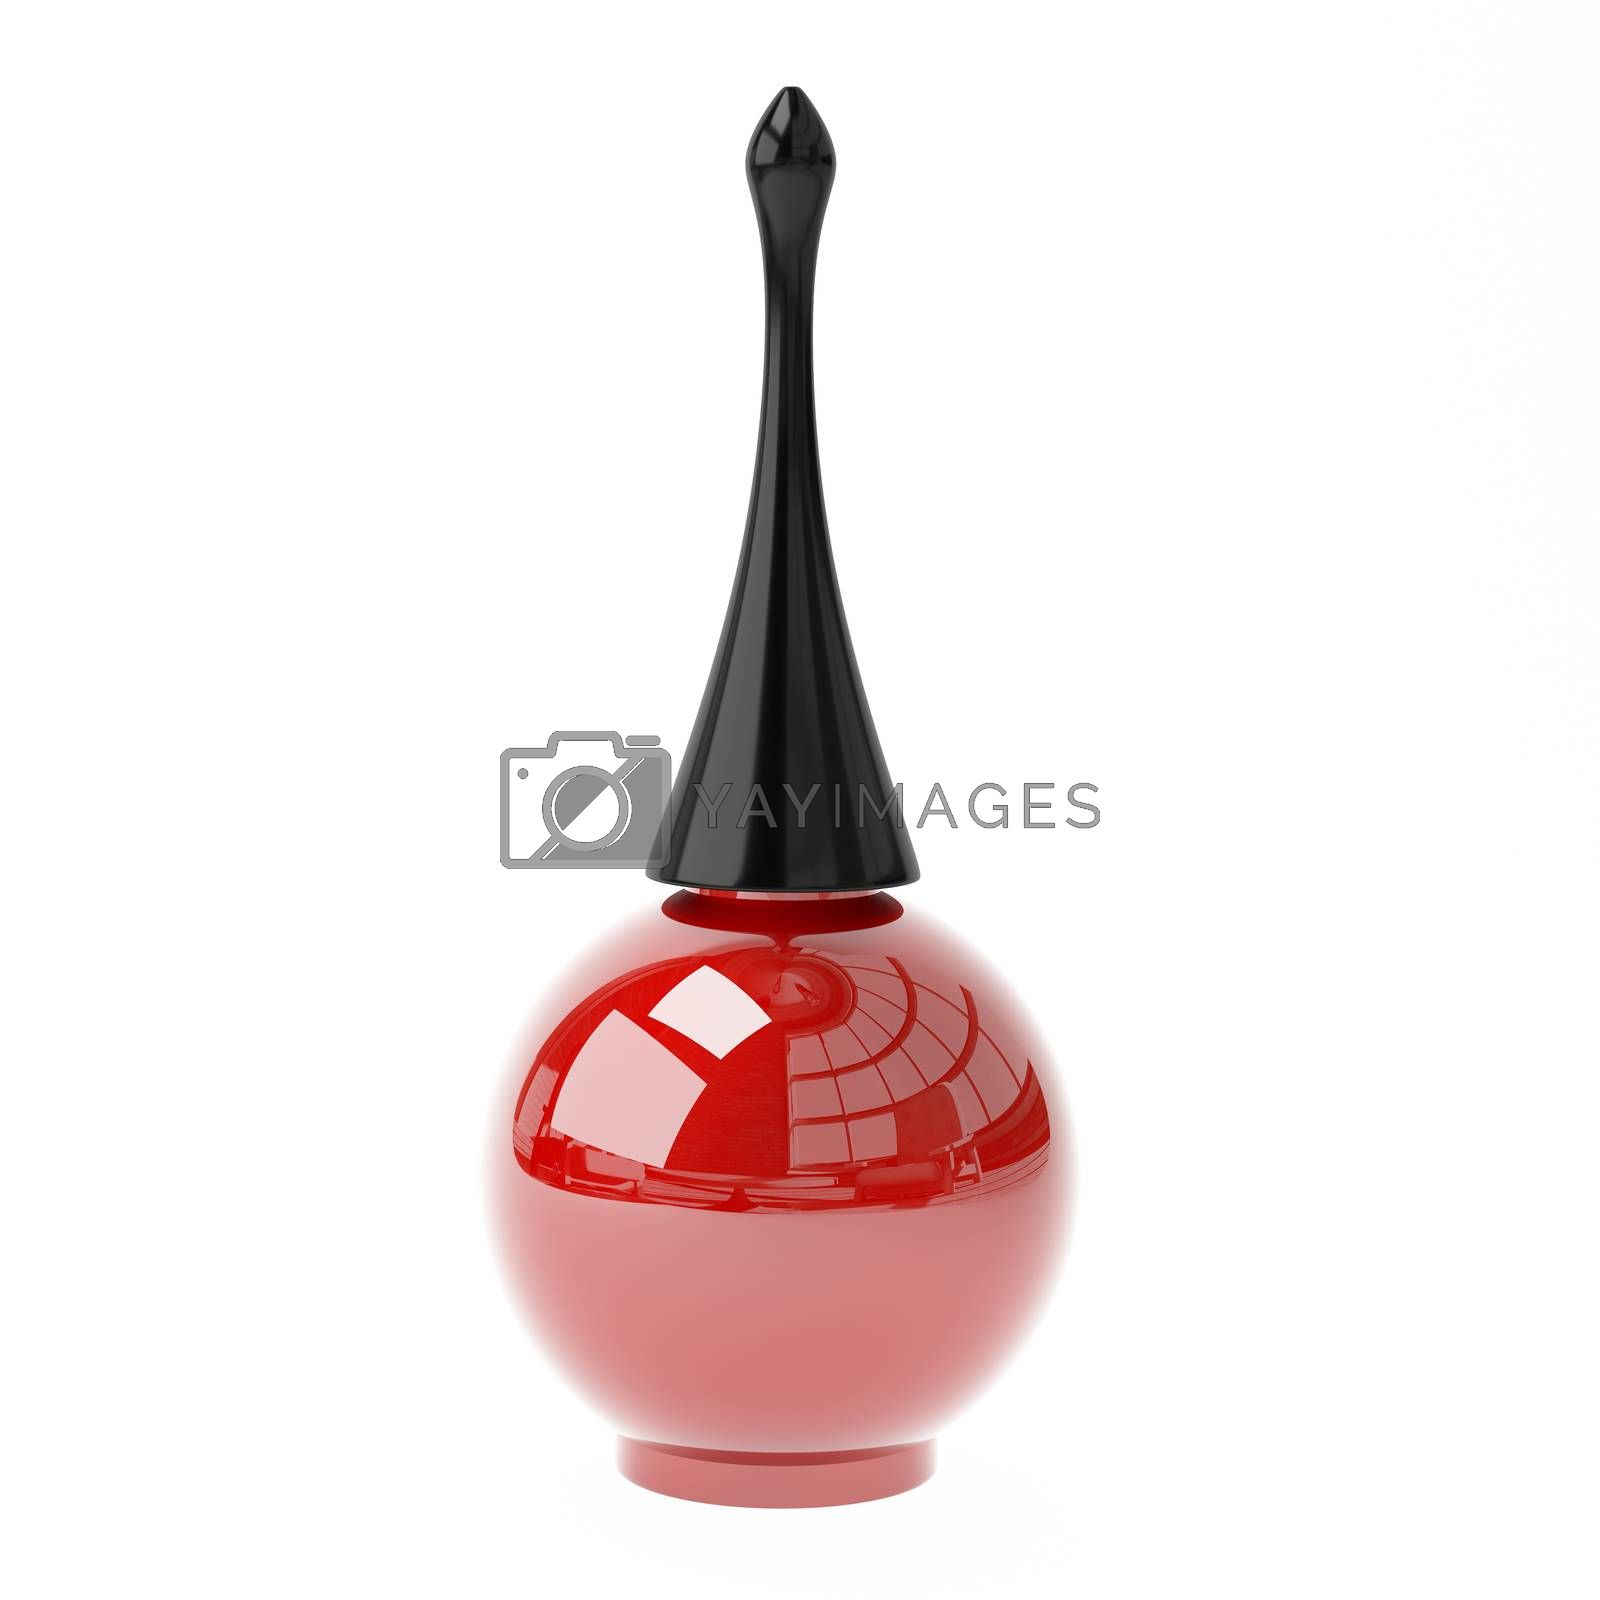 3D Illustration Red Nail Polish on a White Background